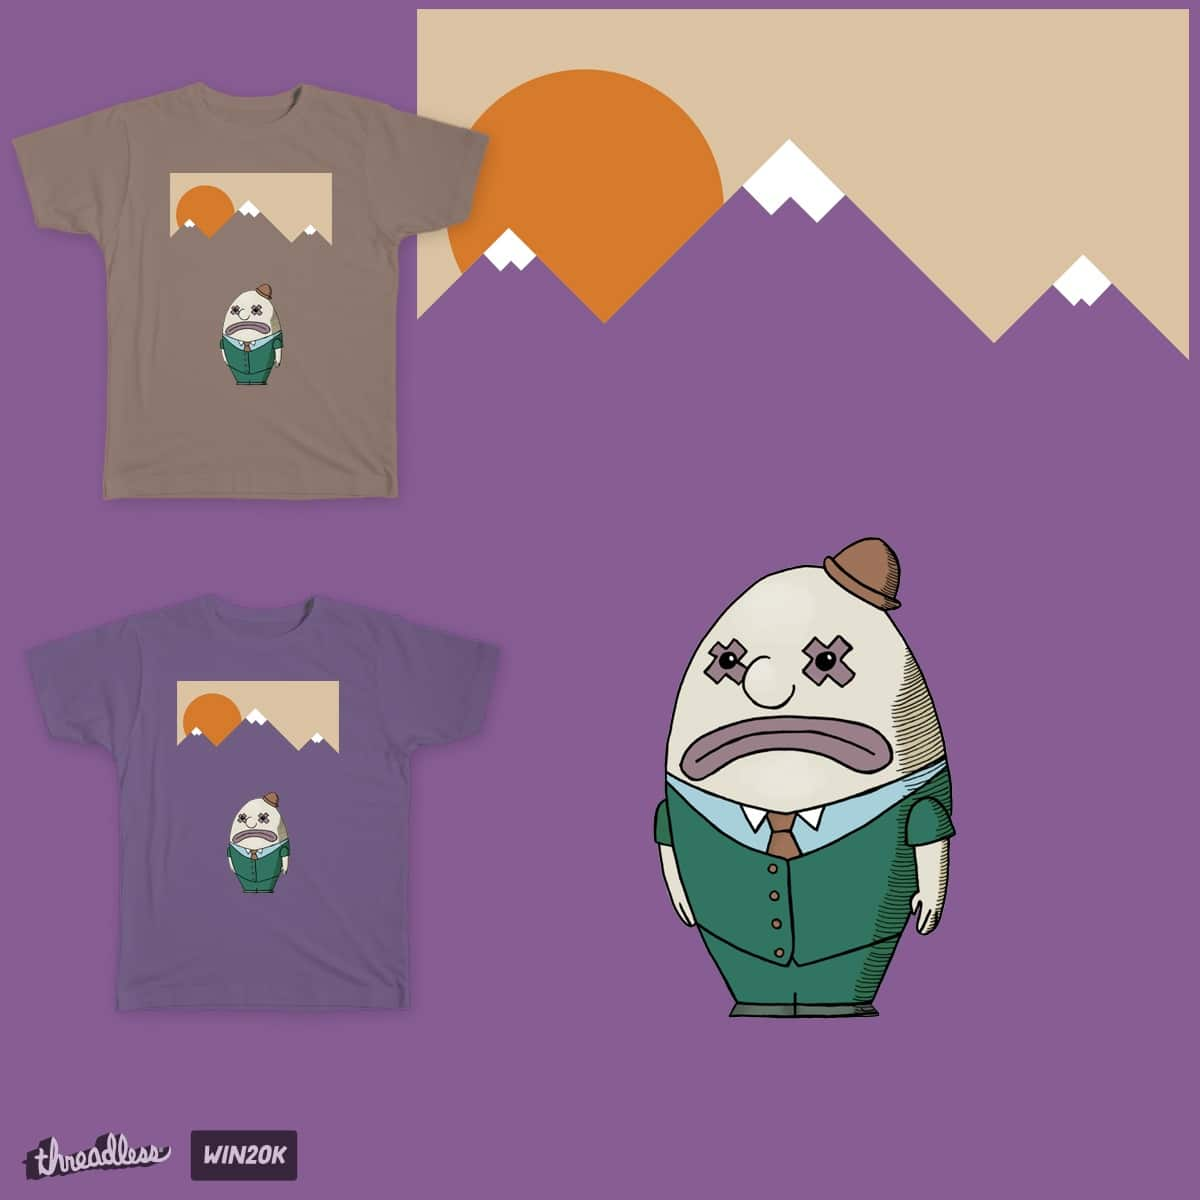 When we last left our hero... by justin23000 on Threadless